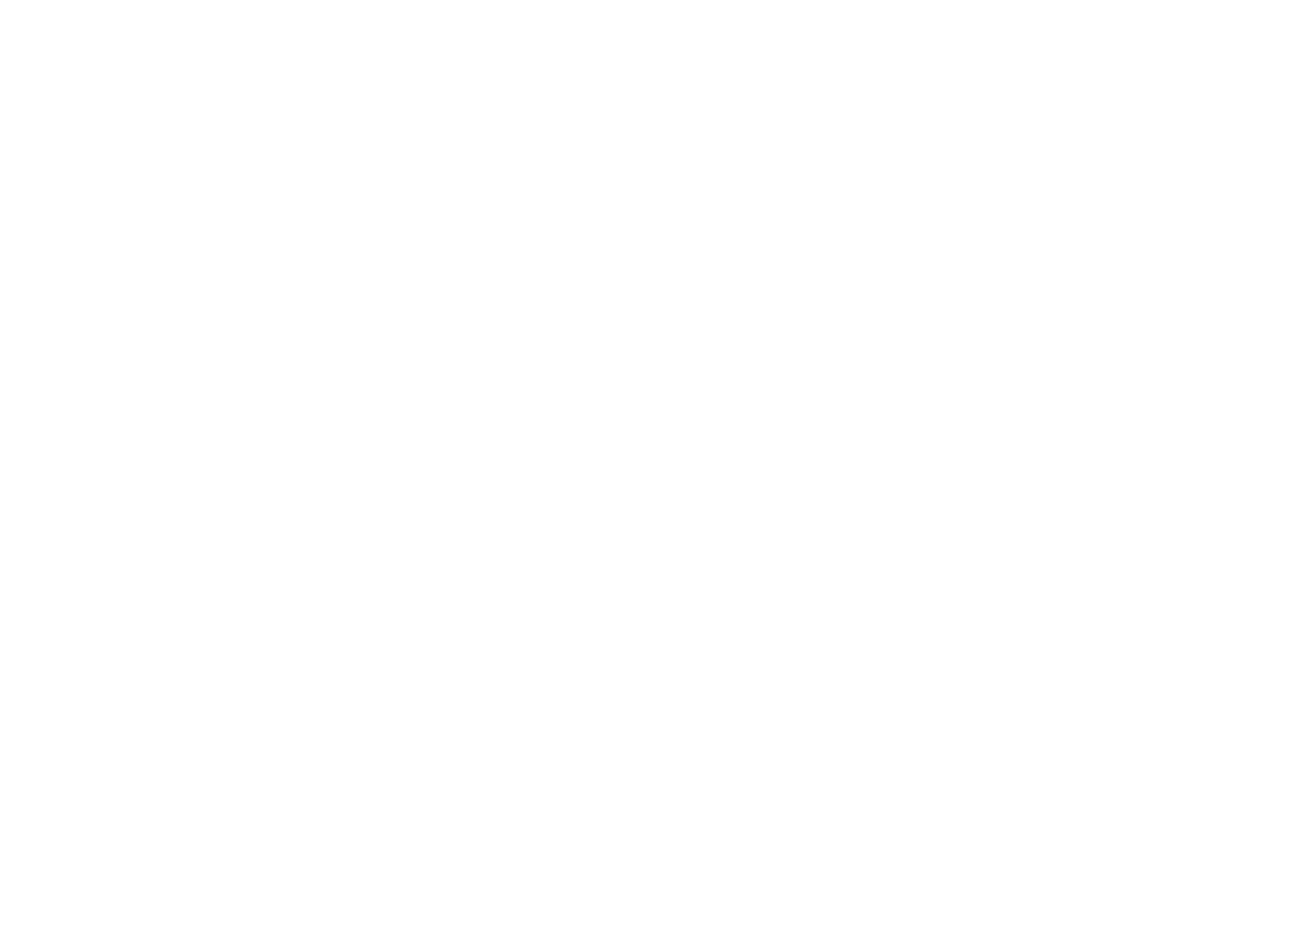 Lux Nightwear